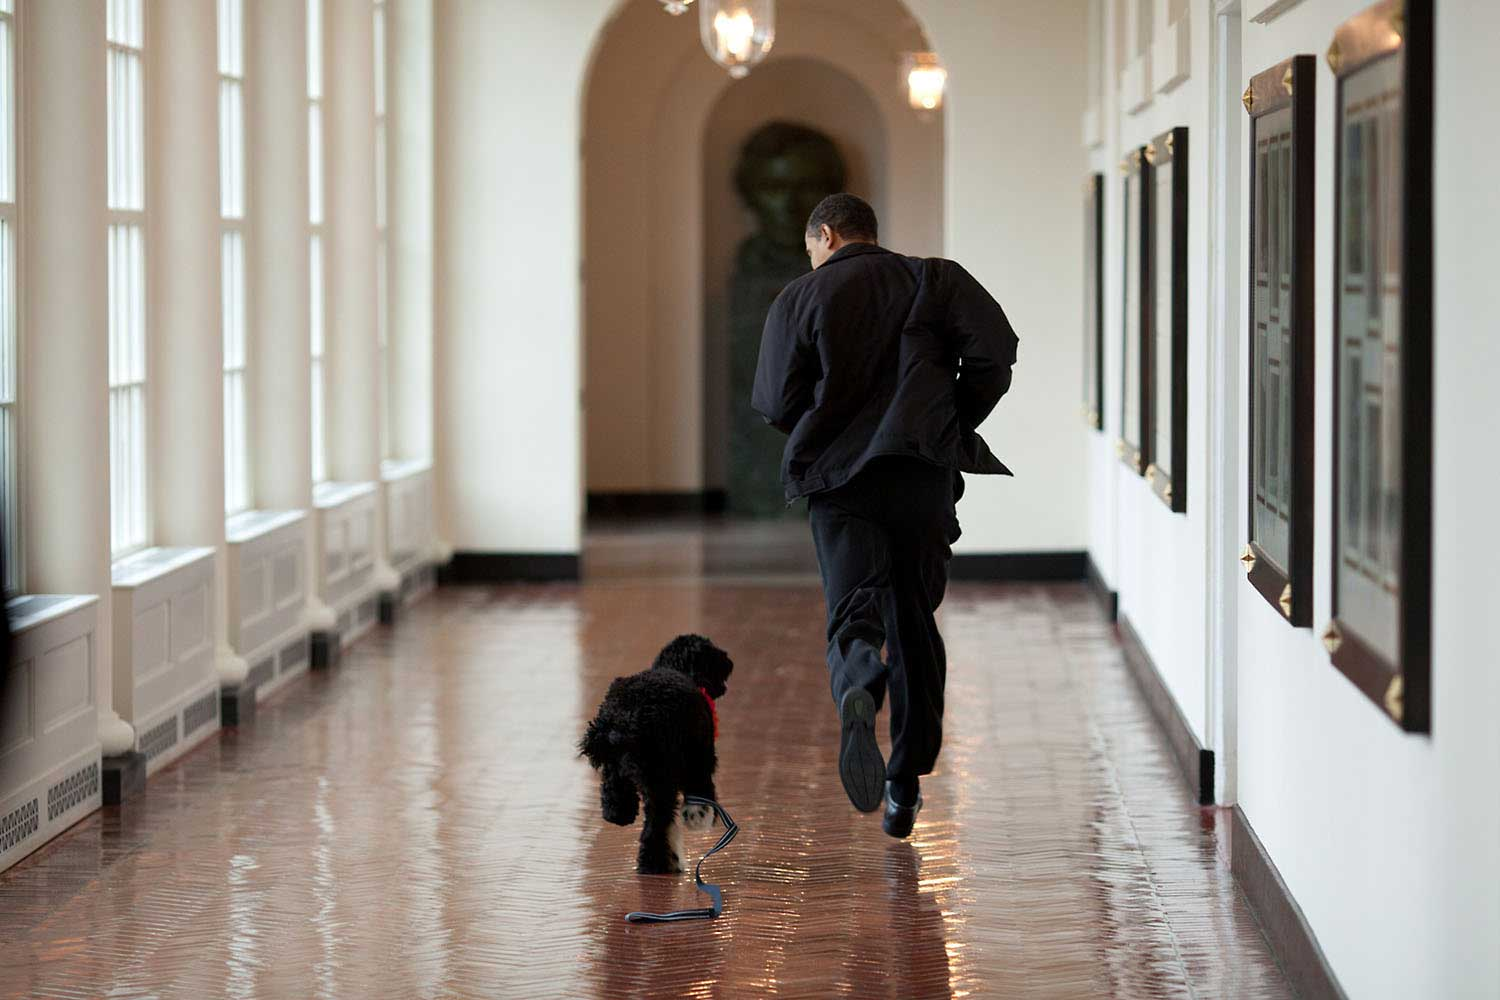 """The Obama family was introduced to a prospective family dog at a secret greet on March 15, 2009. After spending about an hour with the dog, the family decided he was the one. Here, the dog ran alongside the President in an East Wing hallway. The dog returned to his trainer, while the Obamas embarked on their first international trip. I had to keep these photos secret until a few weeks later, when the dog was brought 'home' to the White House and introduced to the world as Bo."""